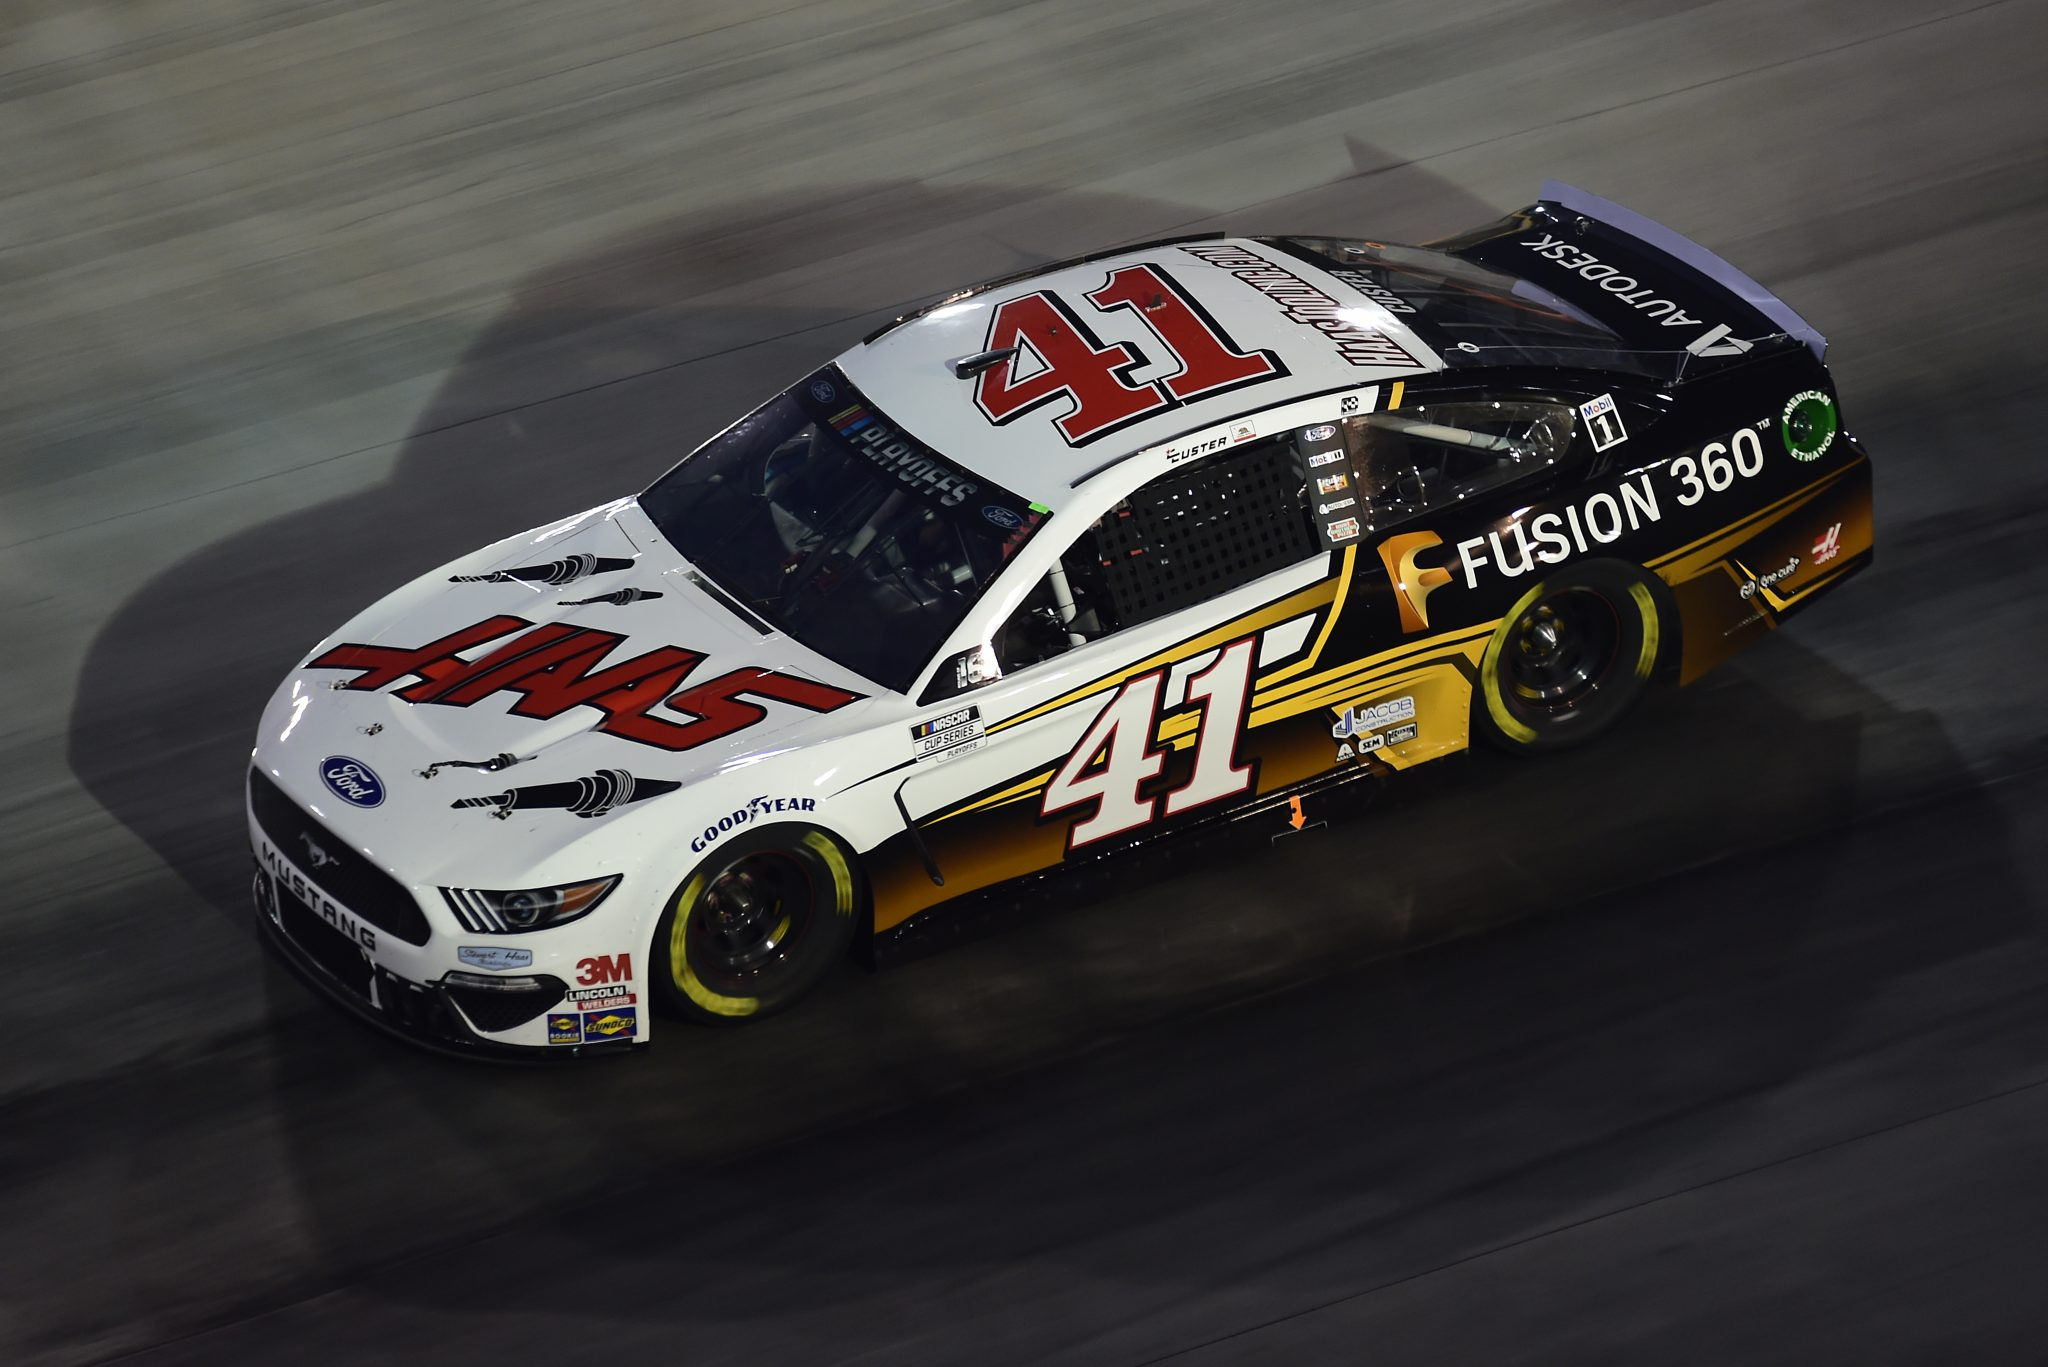 BRISTOL, TENNESSEE - SEPTEMBER 19: Cole Custer, driver of the #41 HaasTooling.com/Autodesk Ford, drives during the NASCAR Cup Series Bass Pro Shops Night Race at Bristol Motor Speedway on September 19, 2020 in Bristol, Tennessee. (Photo by Jared C. Tilton/Getty Images) | Getty Images